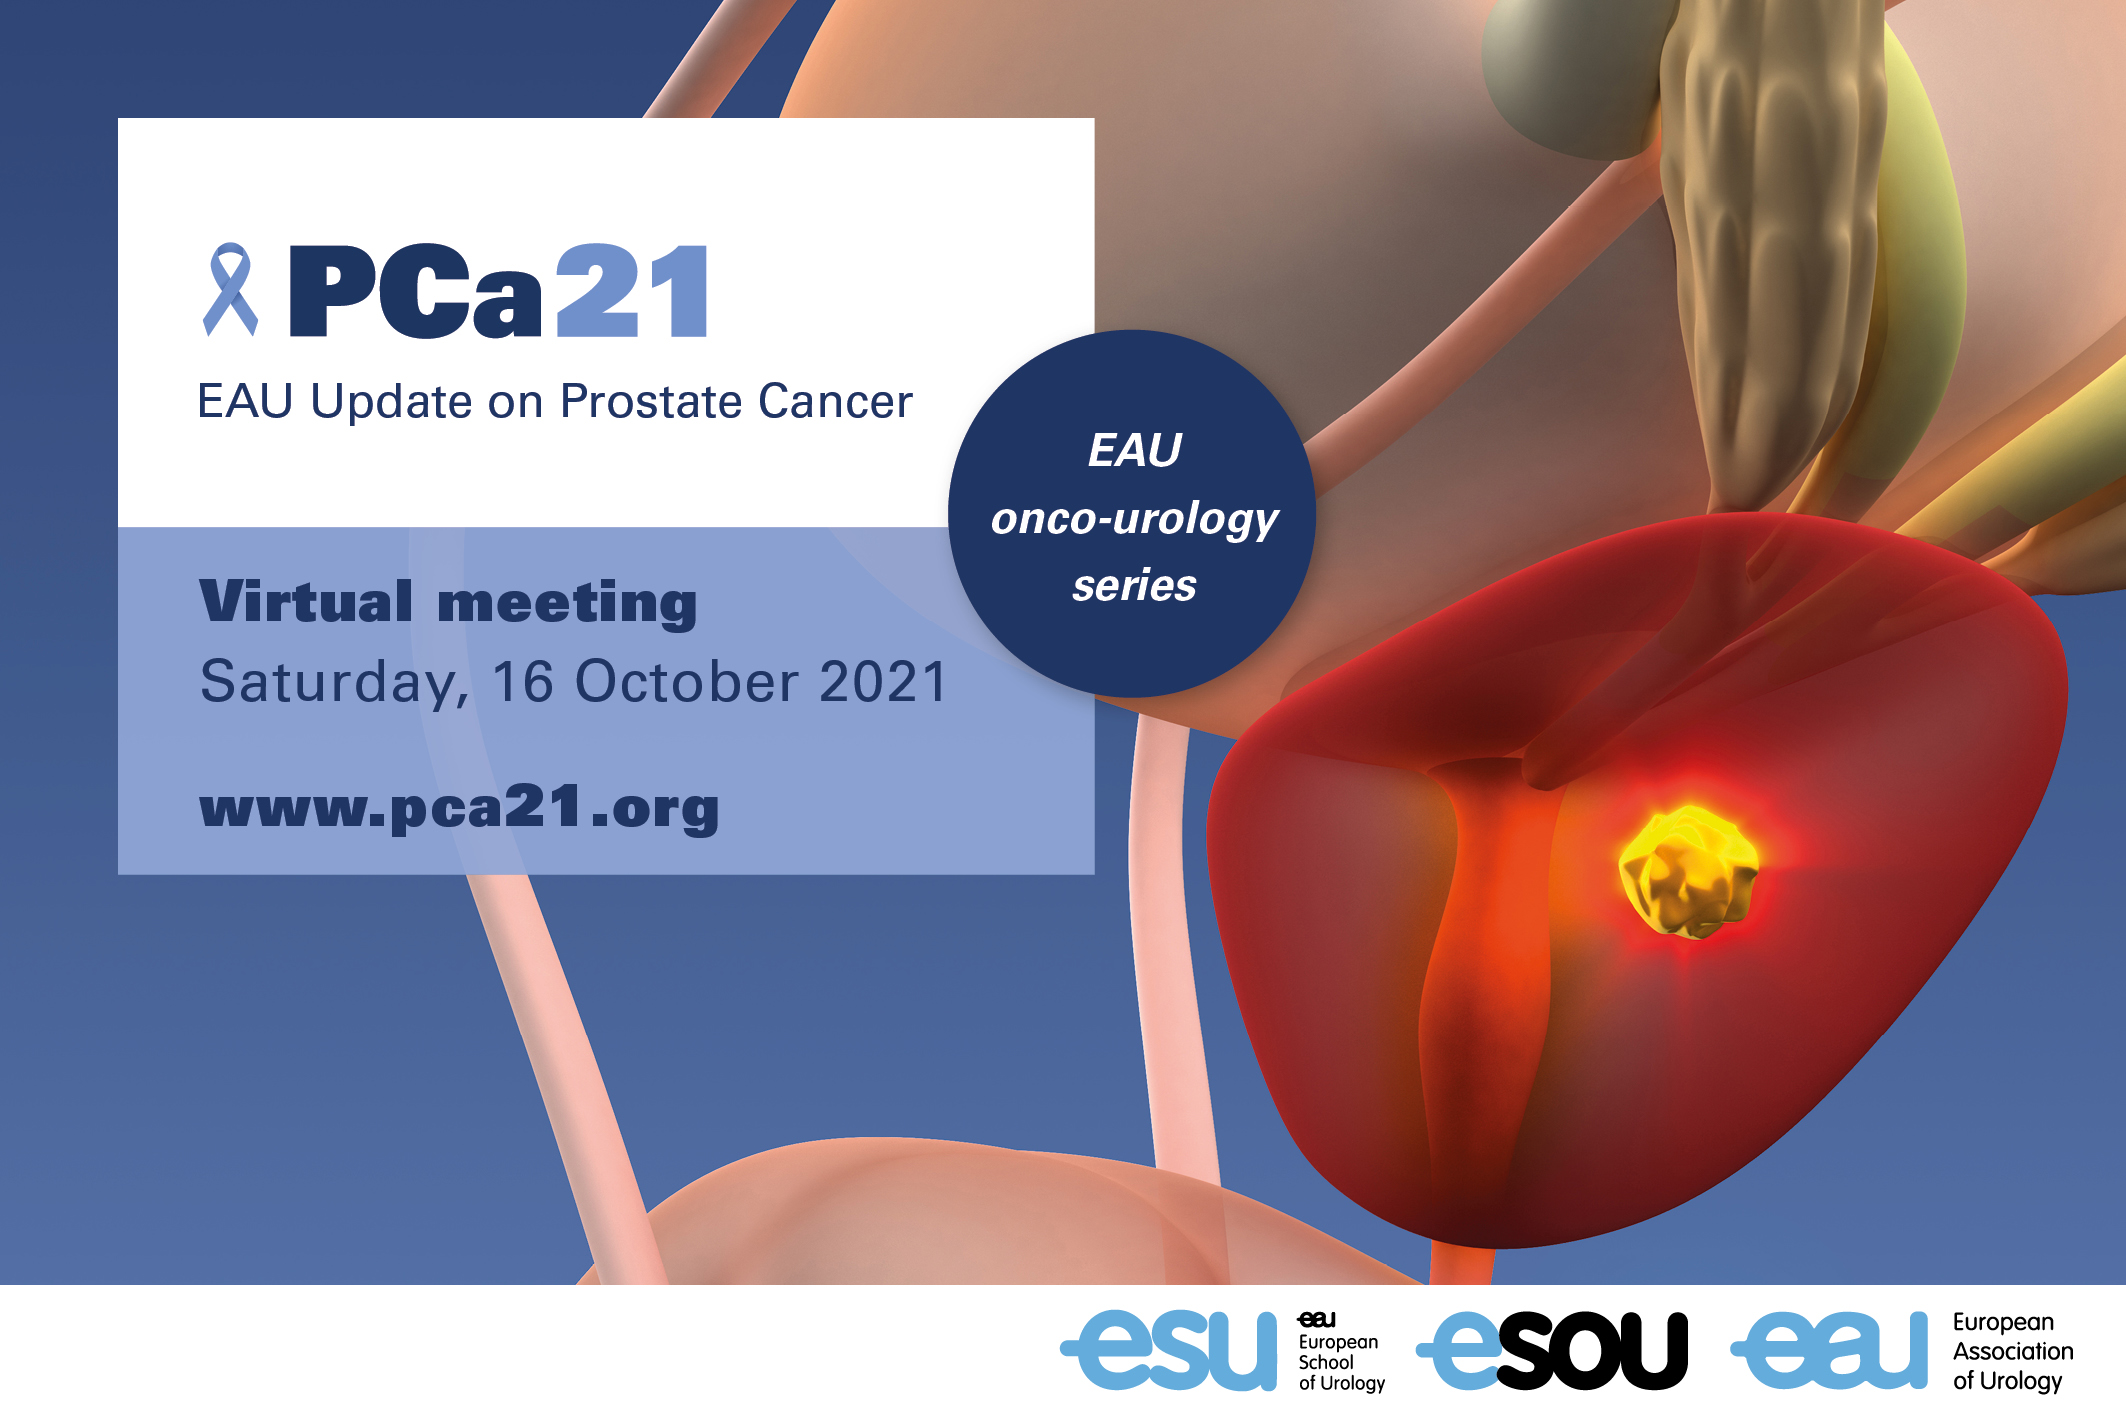 EAU Update on Prostate Cancer - PCa21